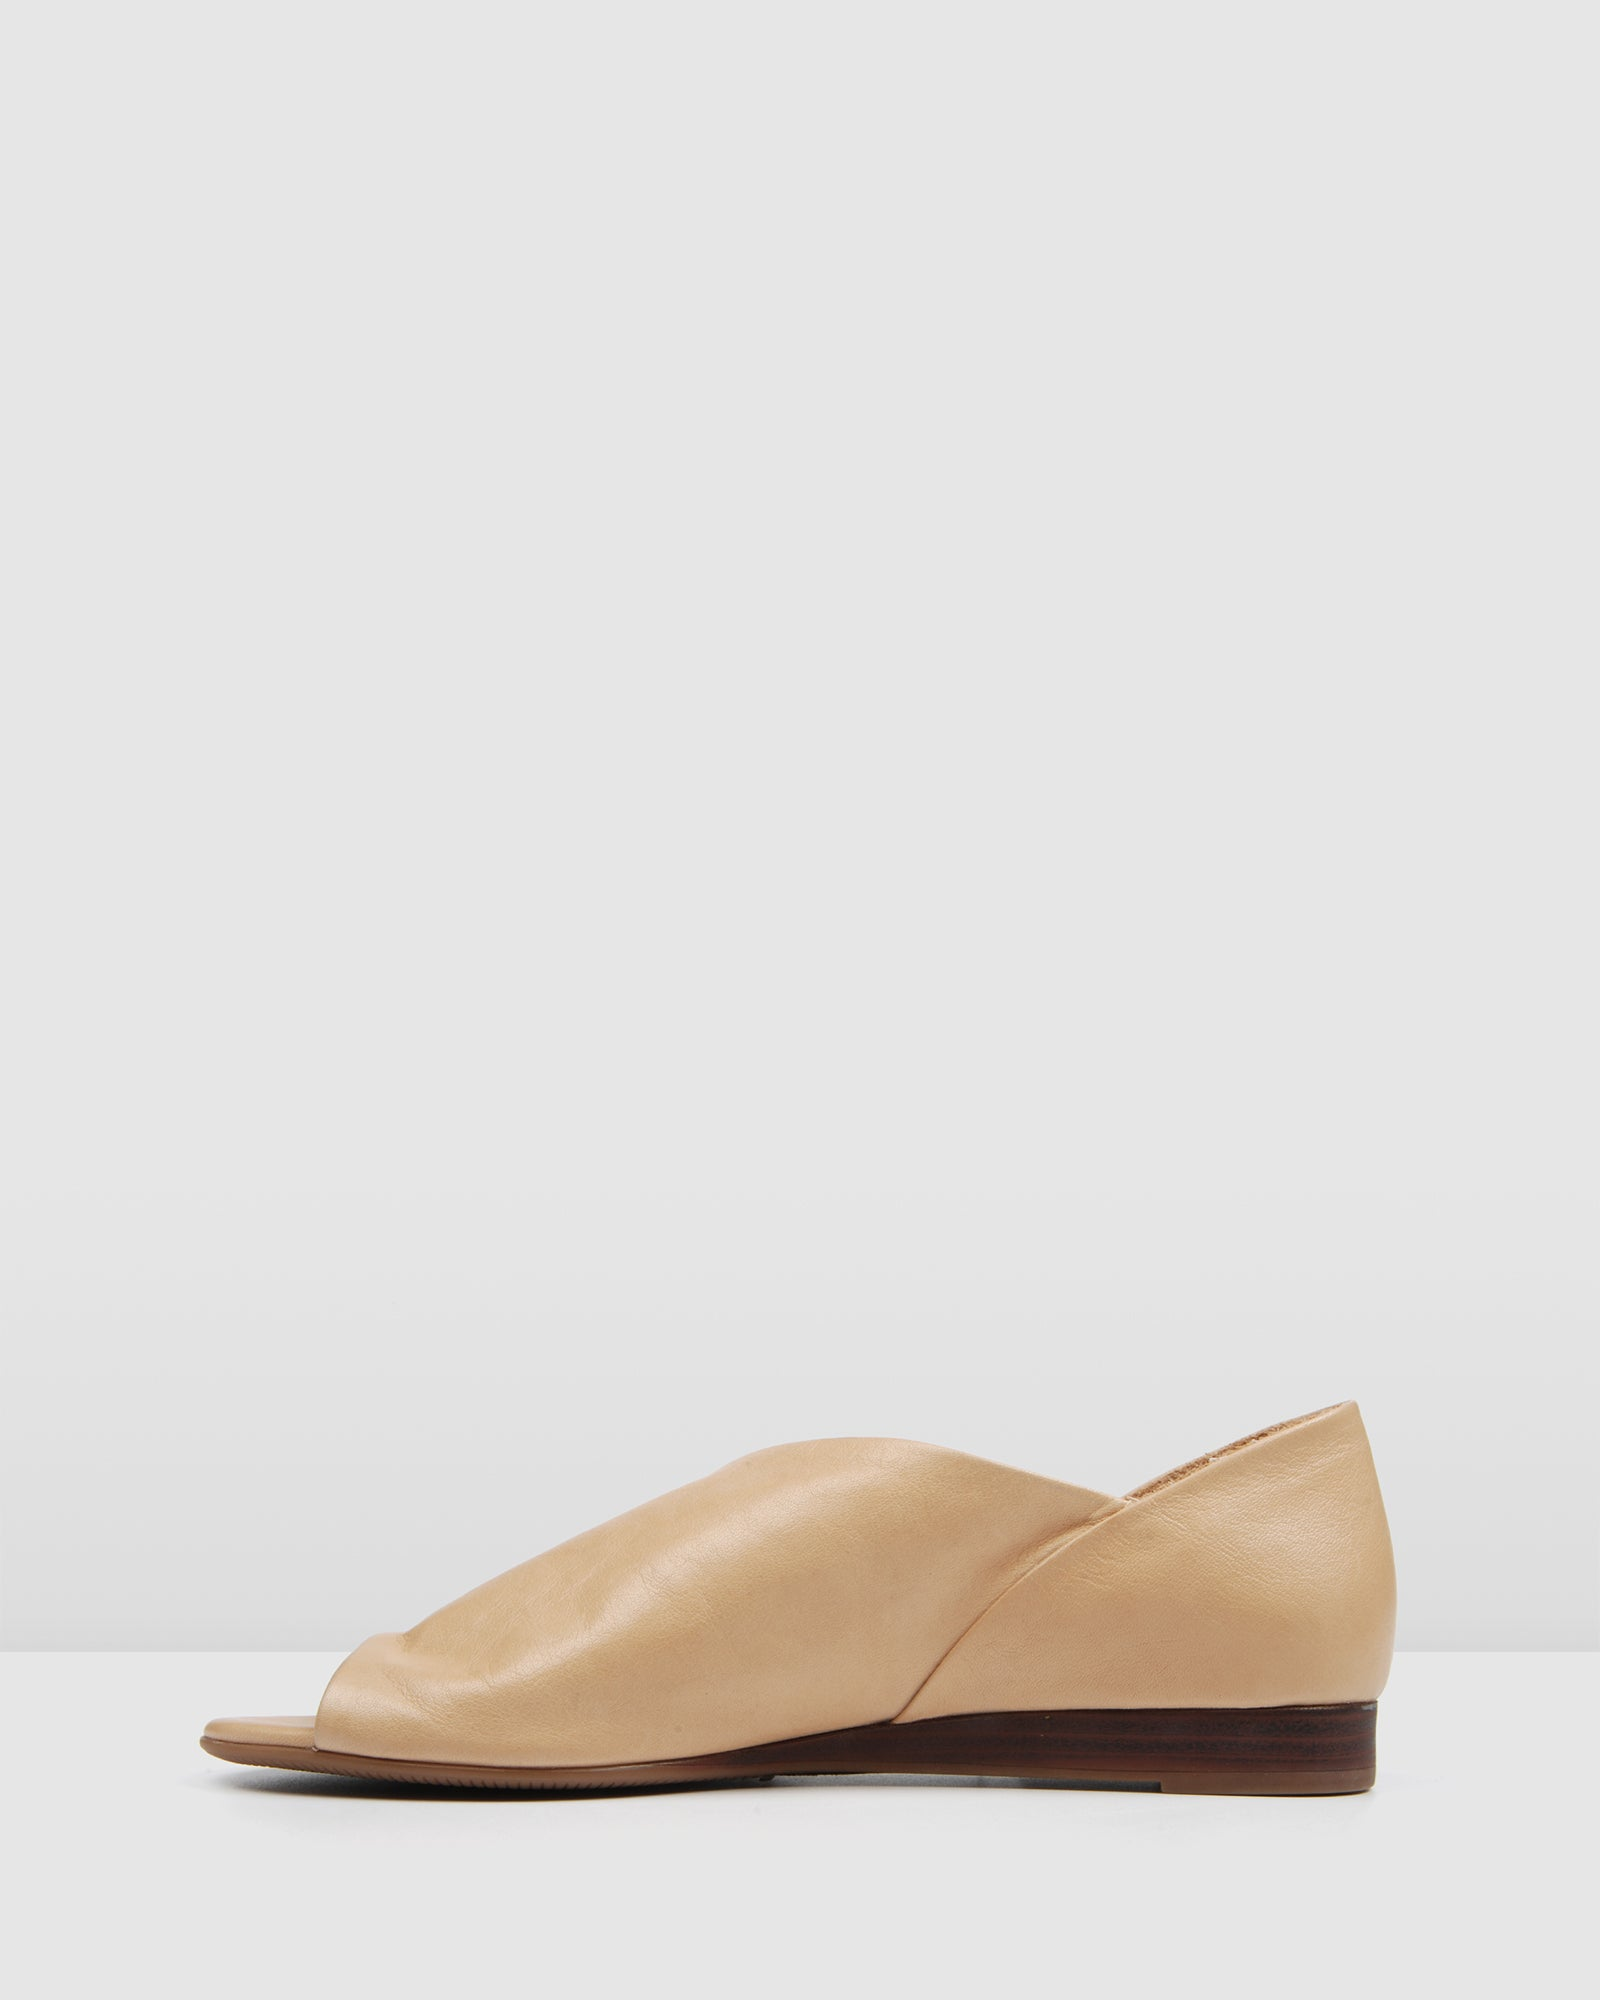 TENLEY FLAT WEDGE SANDALS NATURAL LEATHER